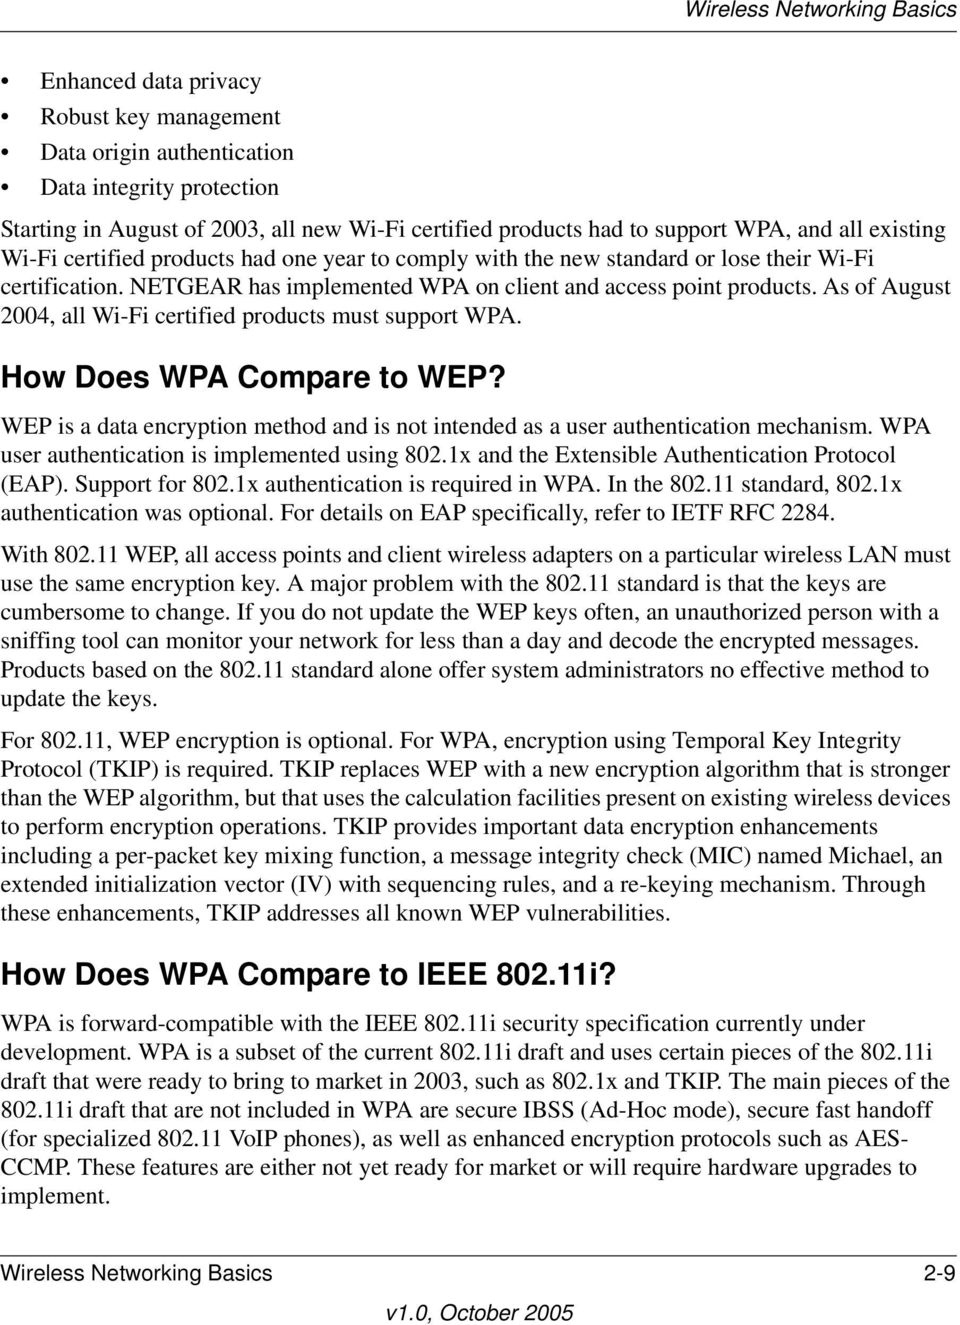 As of August 2004, all Wi-Fi certified products must support WPA. How Does WPA Compare to WEP? WEP is a data encryption method and is not intended as a user authentication mechanism.